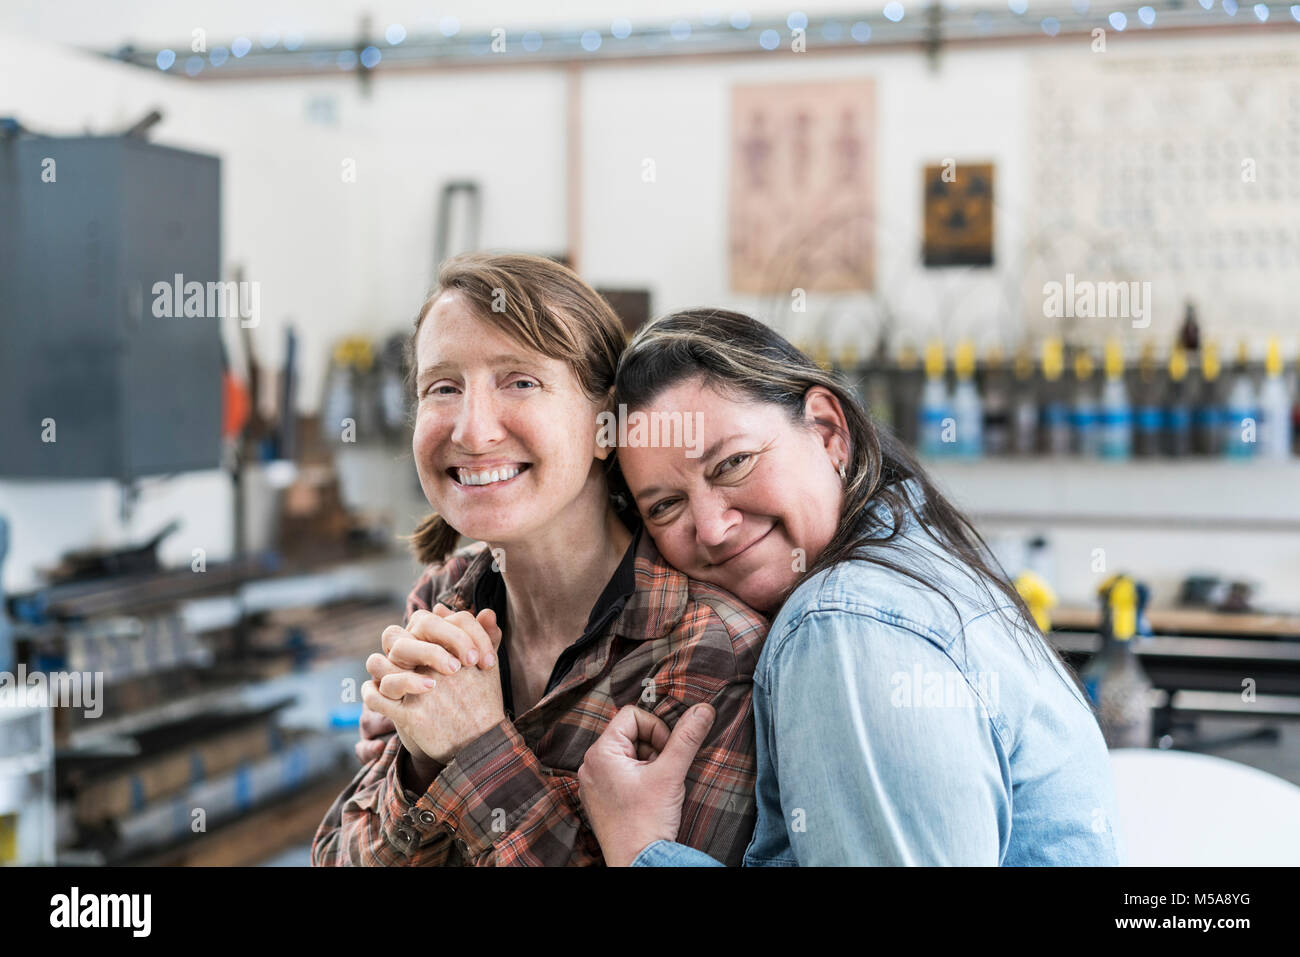 Two women standing in metal workshop, hugging and smiling at camera. - Stock Image